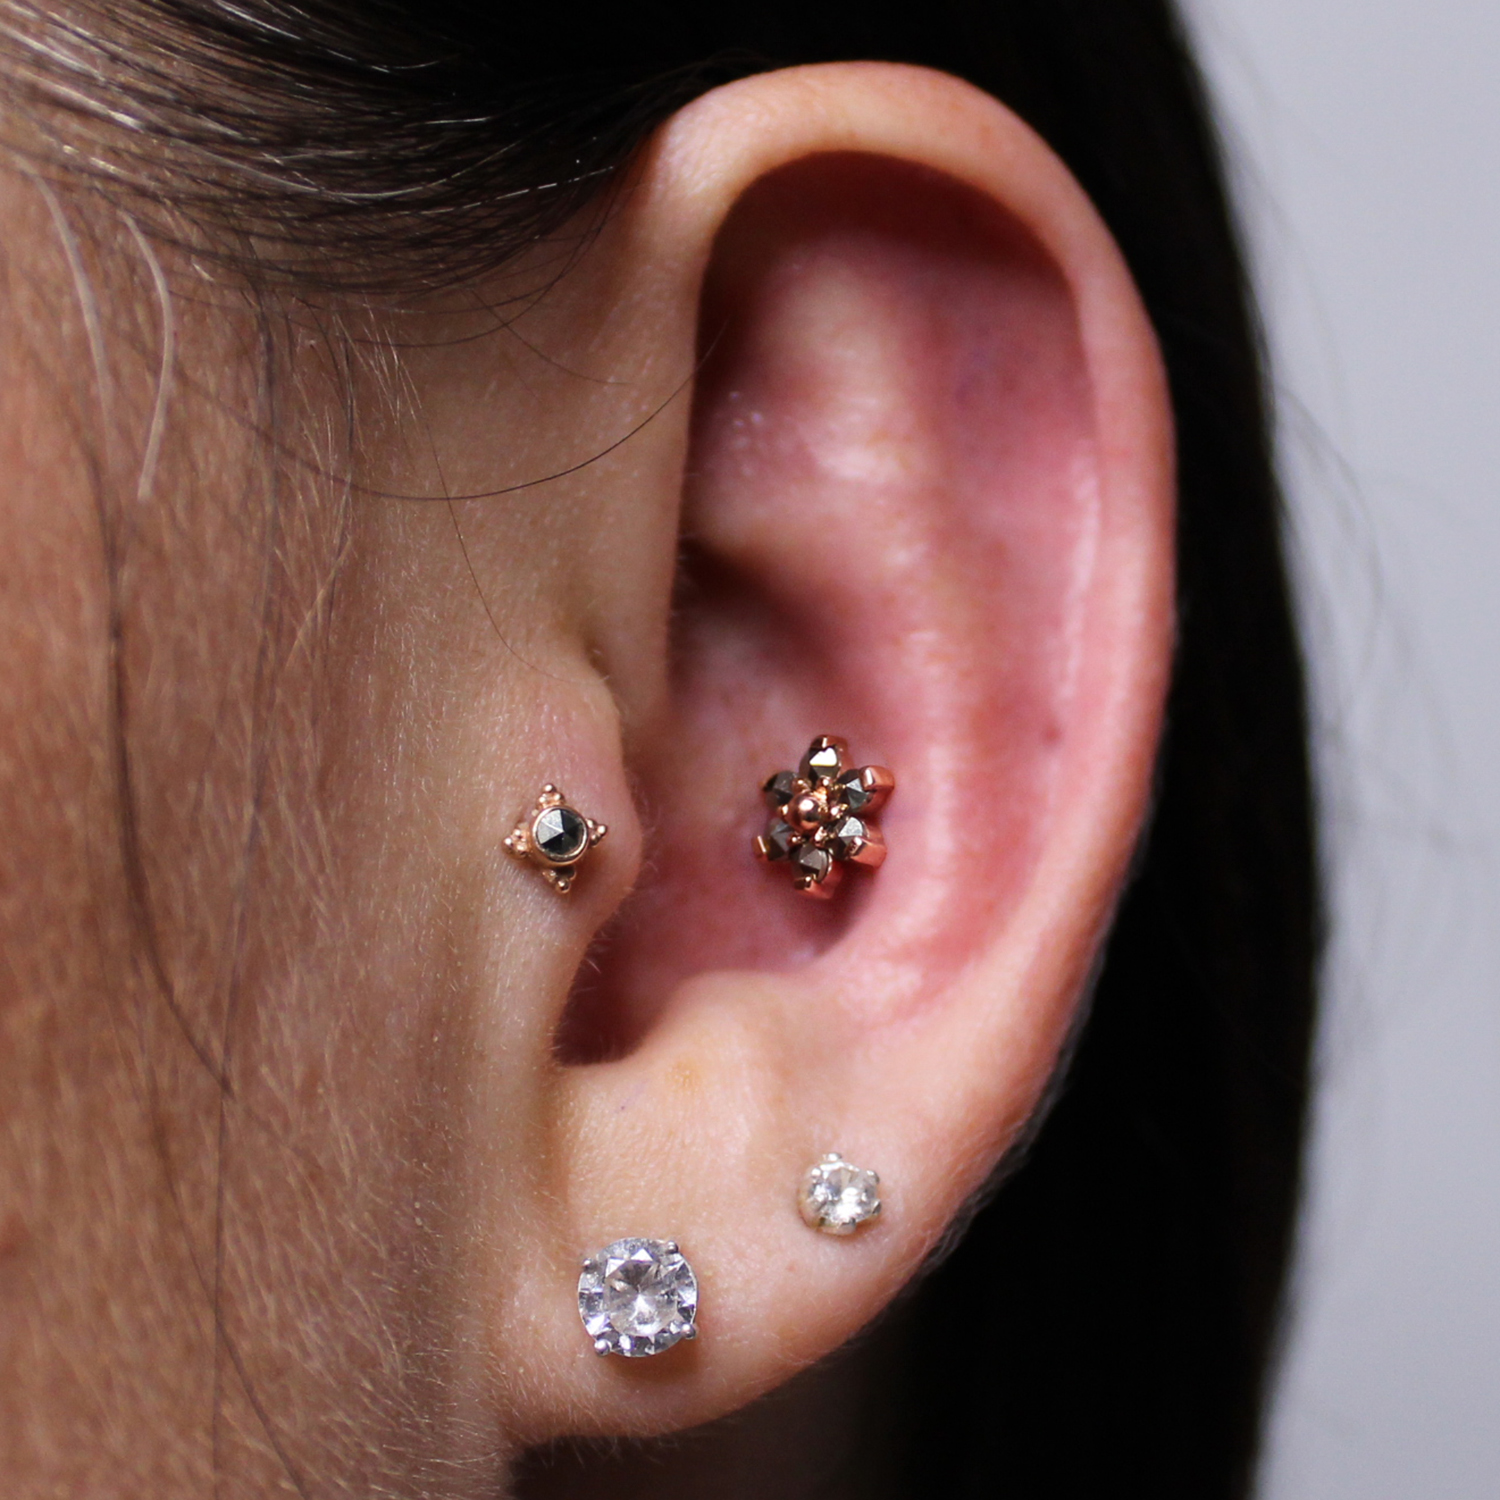 Piercing IMG_1022 Conch Tragus BVLA Marcasite.jpg